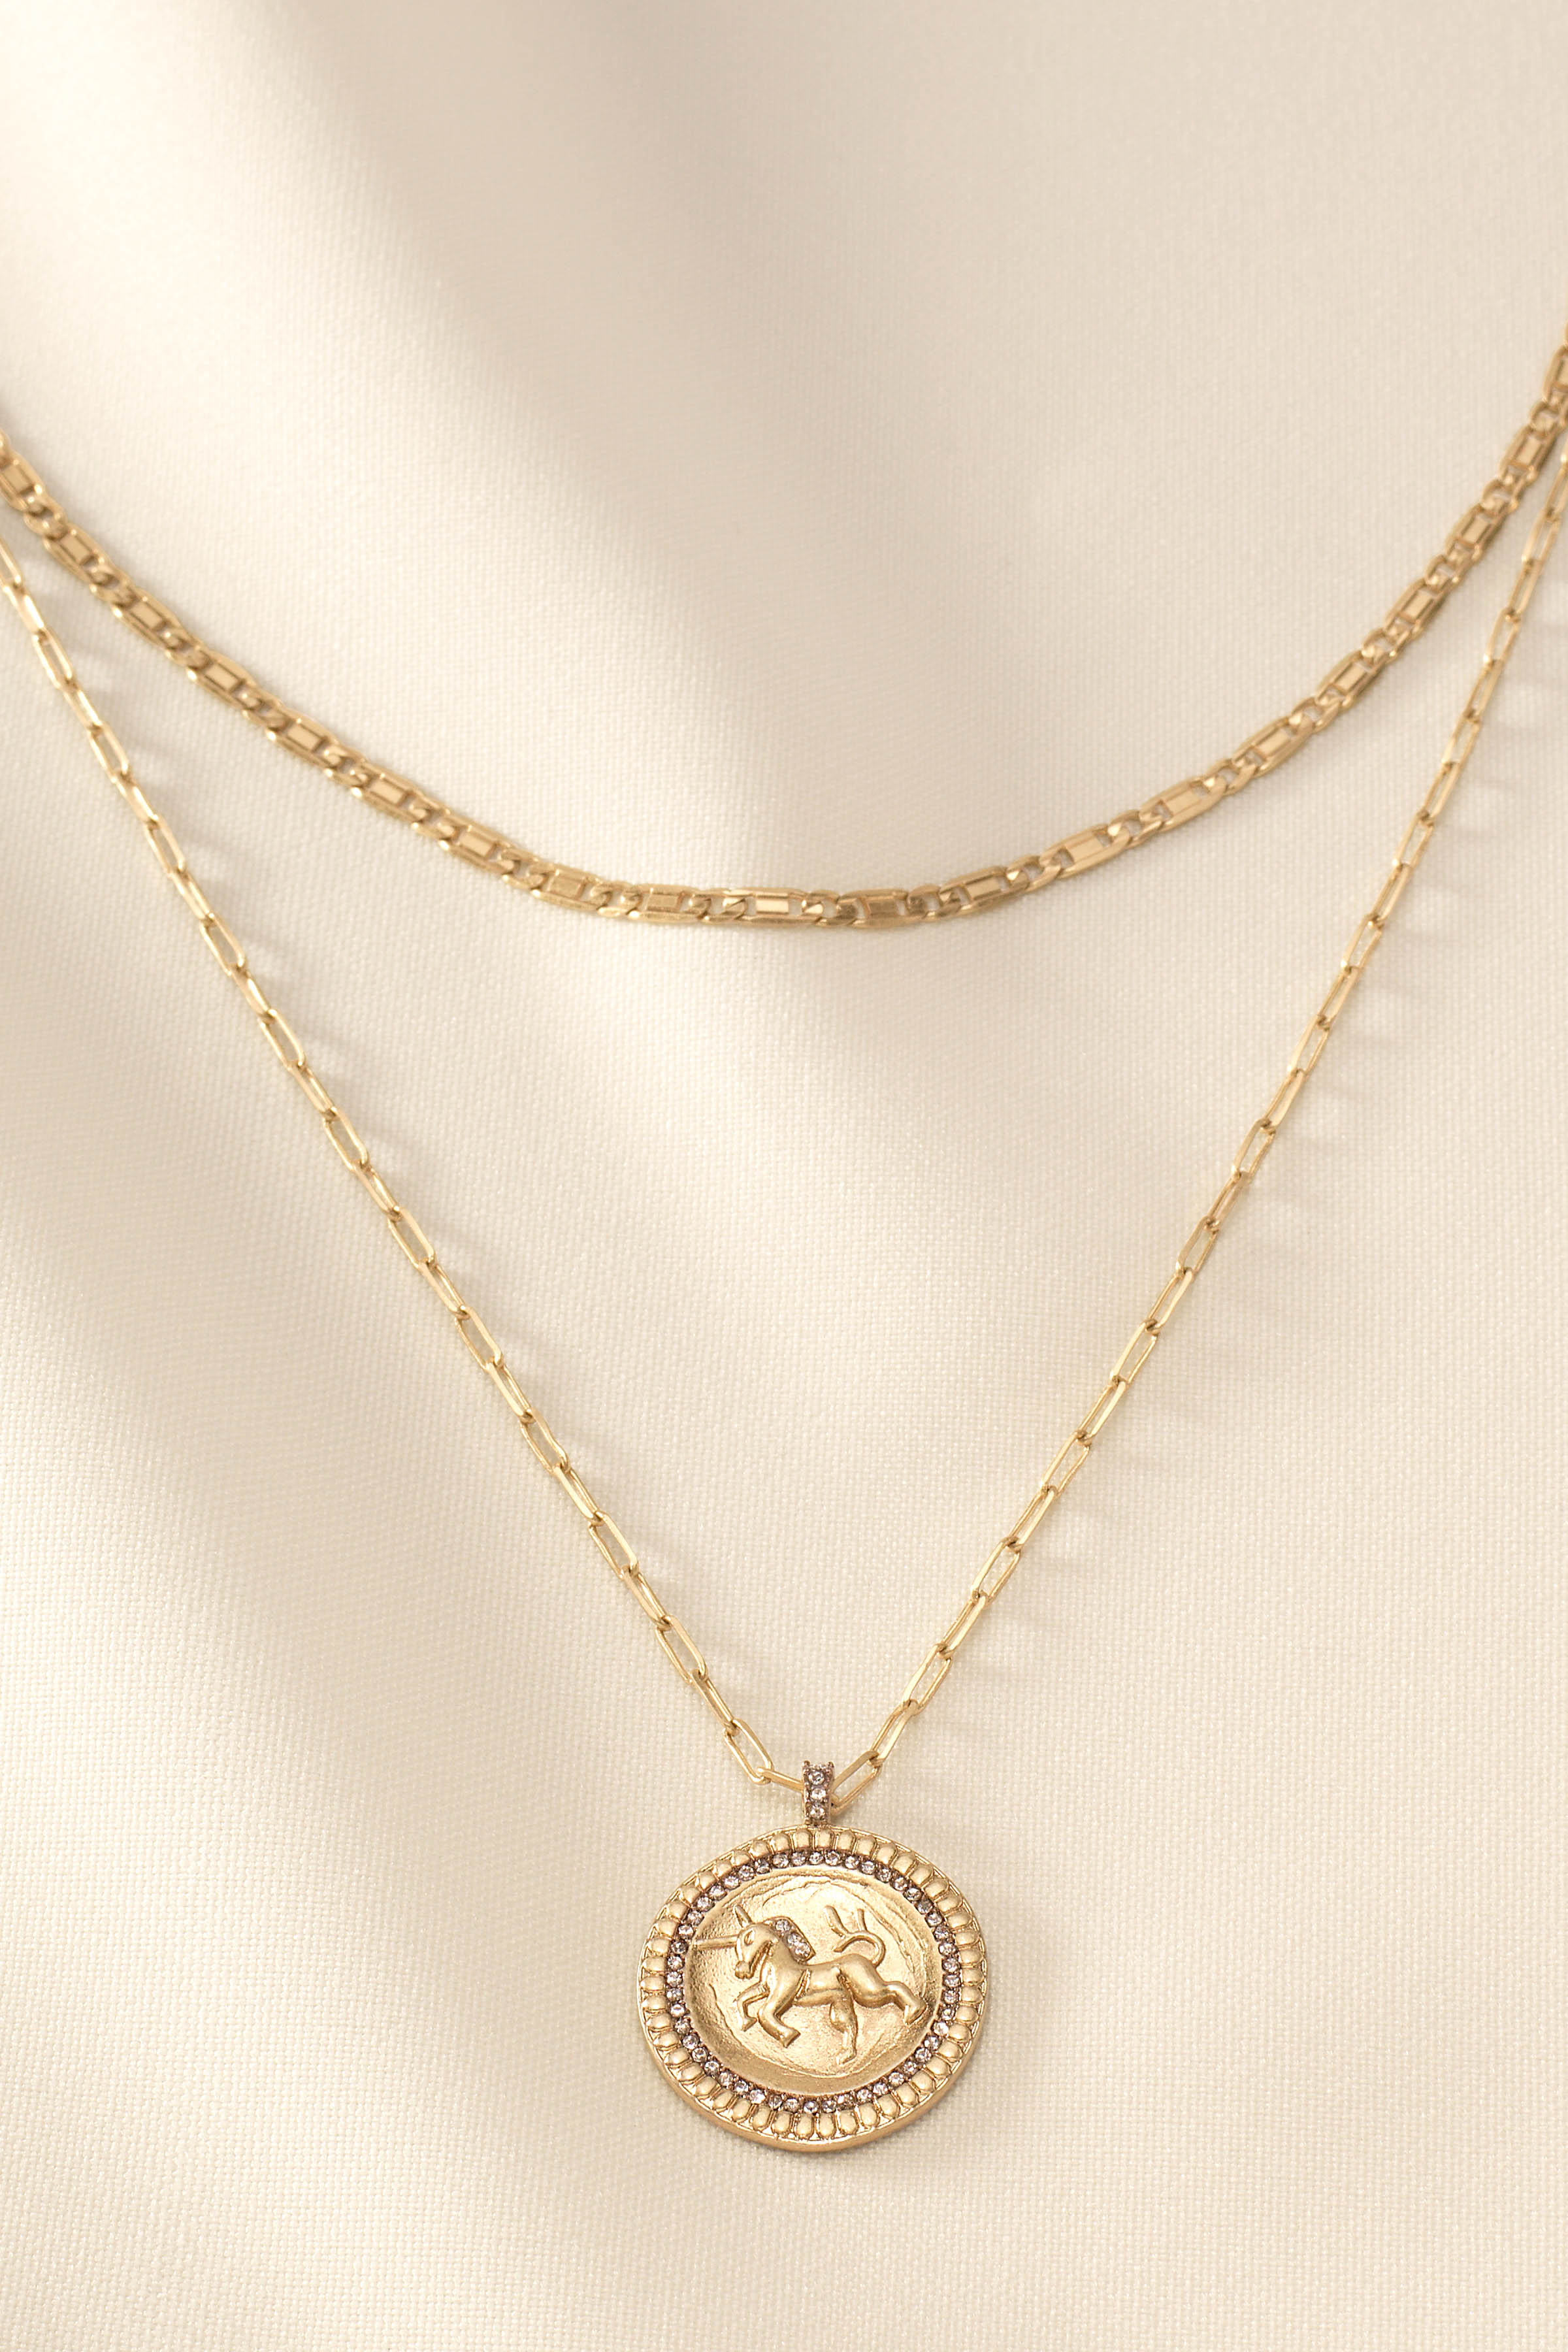 gold necklace Horn necklace coin necklace double horn white horn dangle